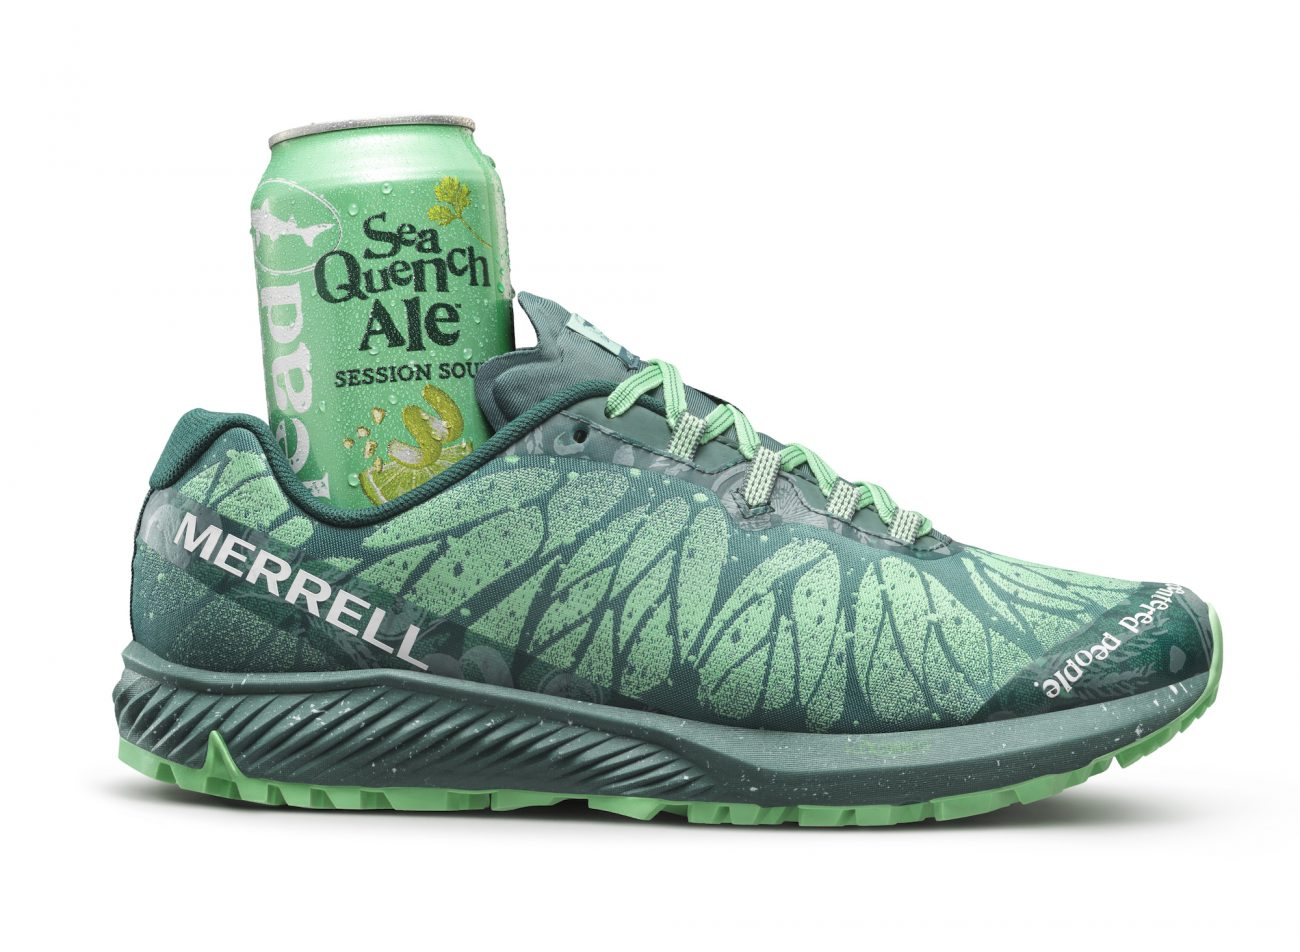 Merrell and Dogfish Head Craft Brewery